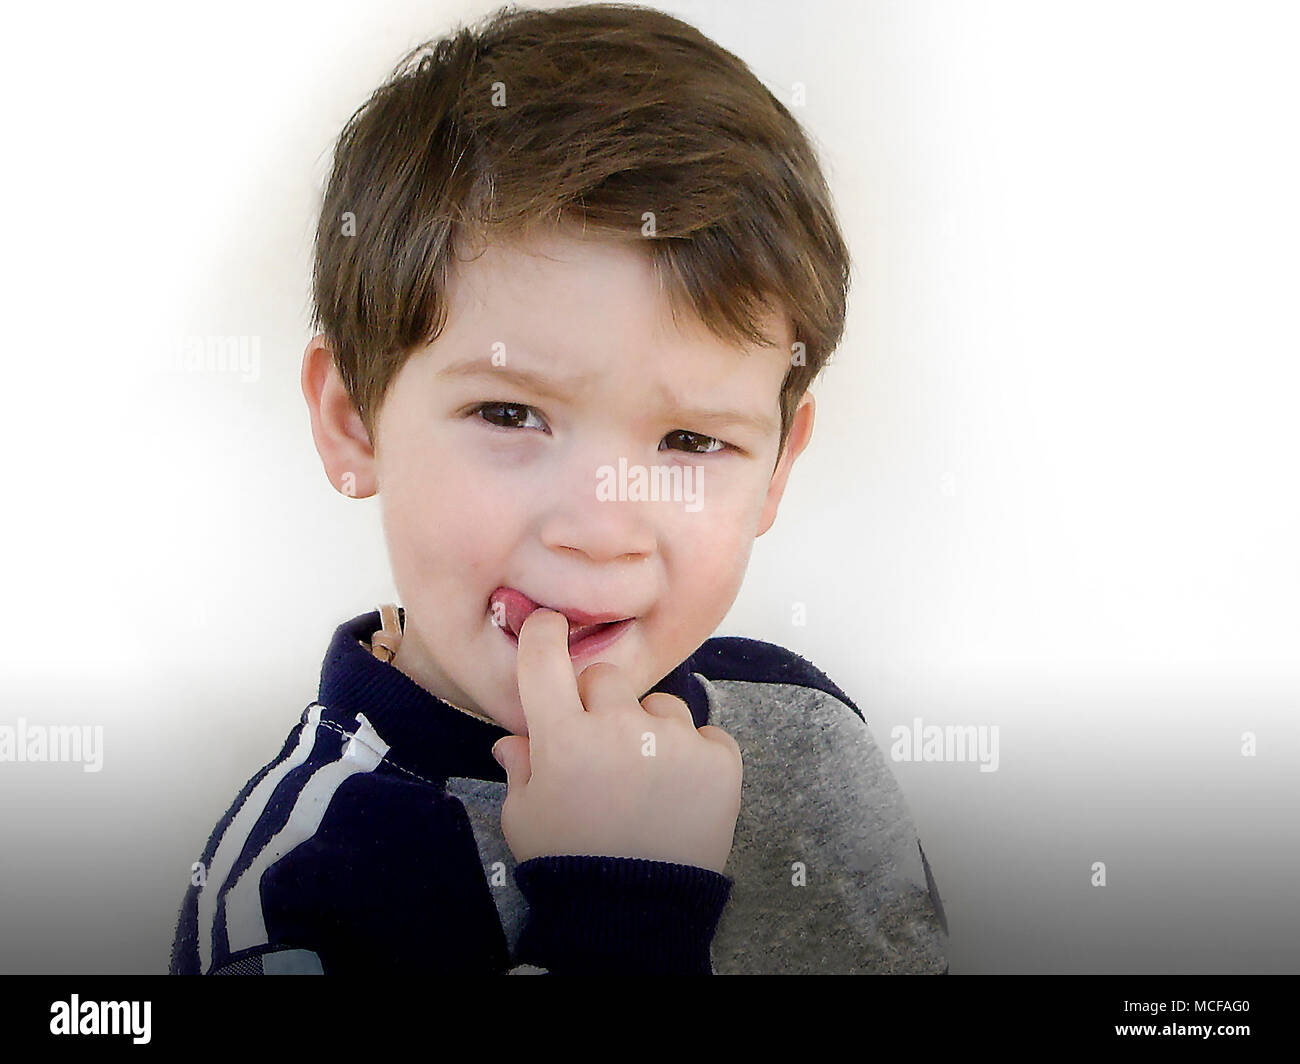 Portrait of an adorable little boy three years old who sucking on its finger, isolated on white background - Stock Image